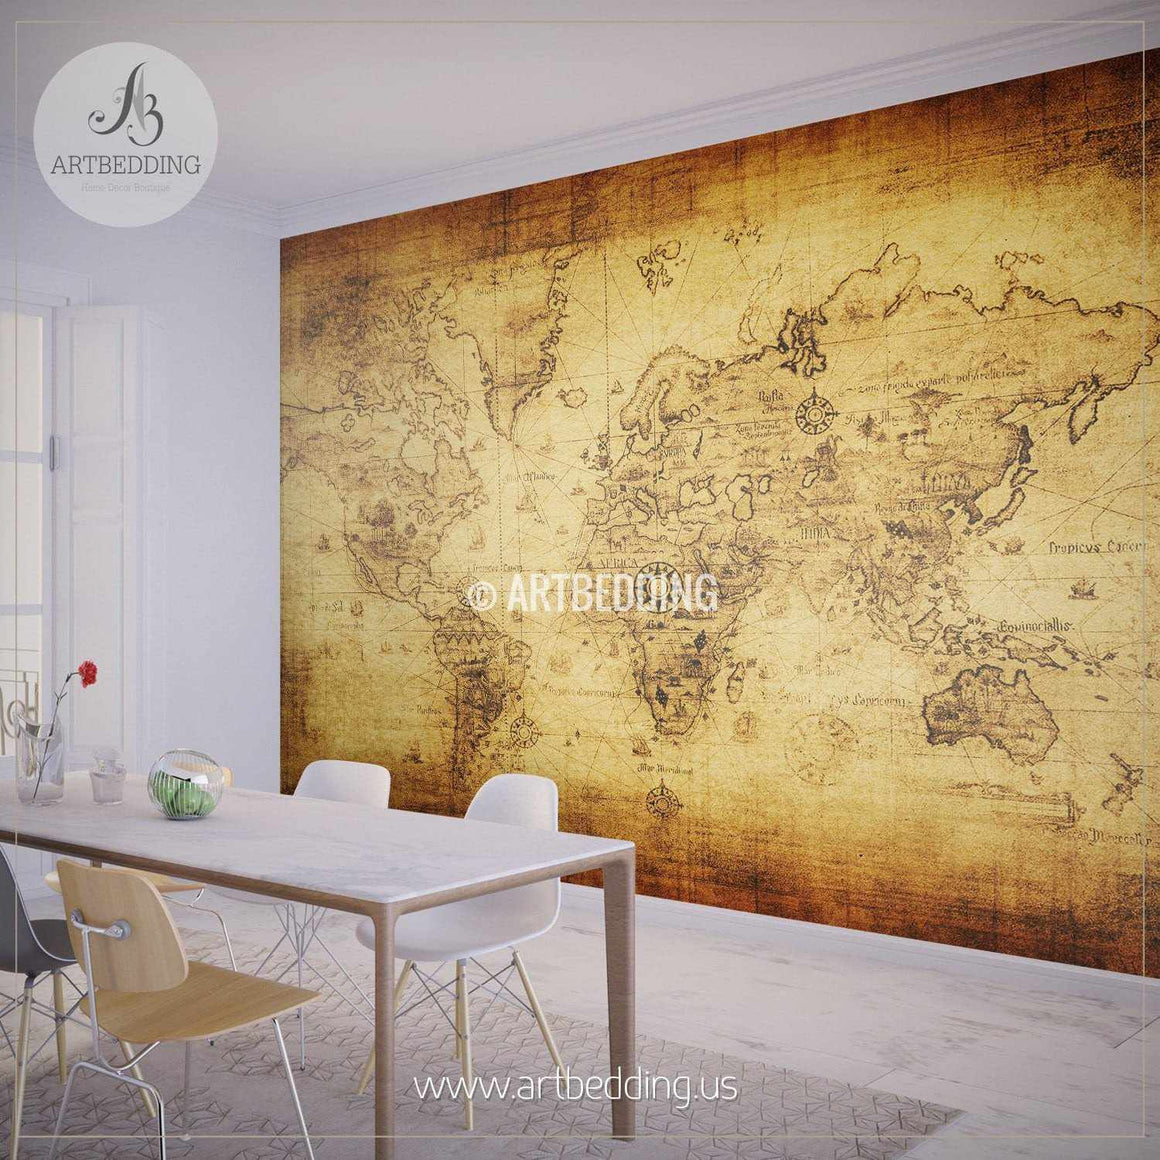 Ancient World Map Wall Mural, Self Adhesive Peel & Stick Photo Mural, Atlas wall mural, mural home decor wall mural